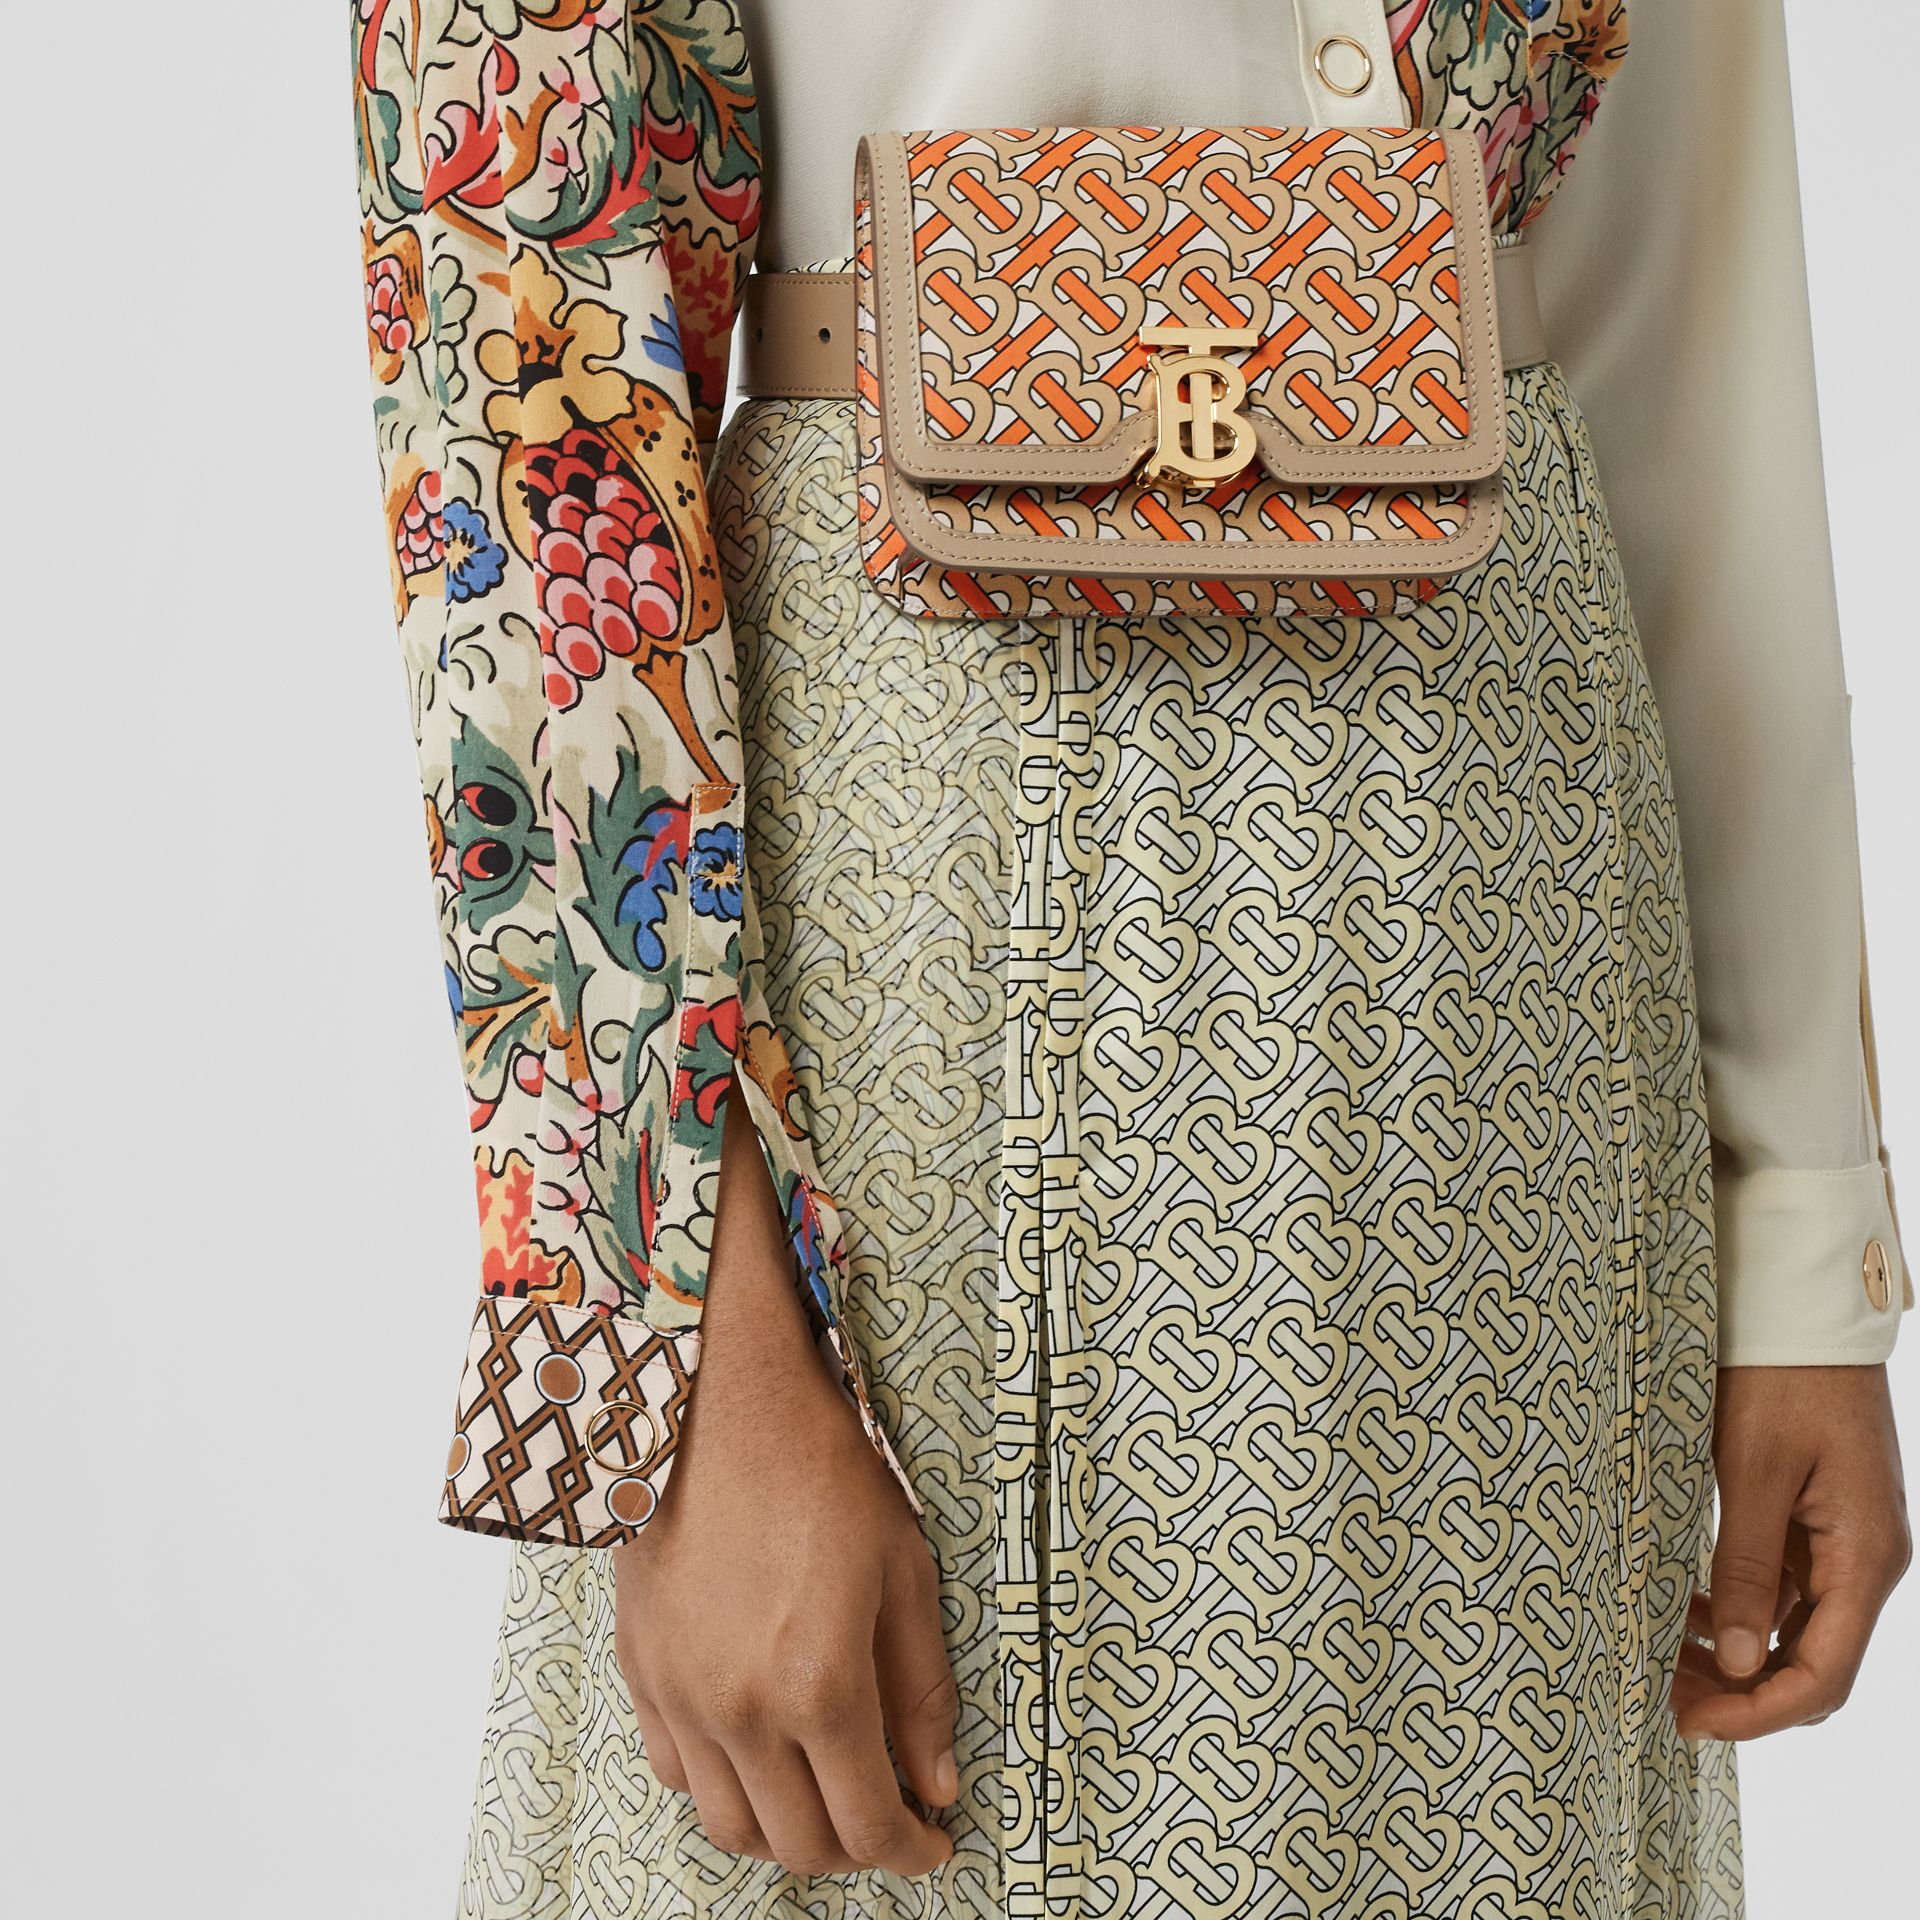 Belted Monogram Print Leather TB Bag in Bright Orange - Women | Burberry United Kingdom - gallery image 2